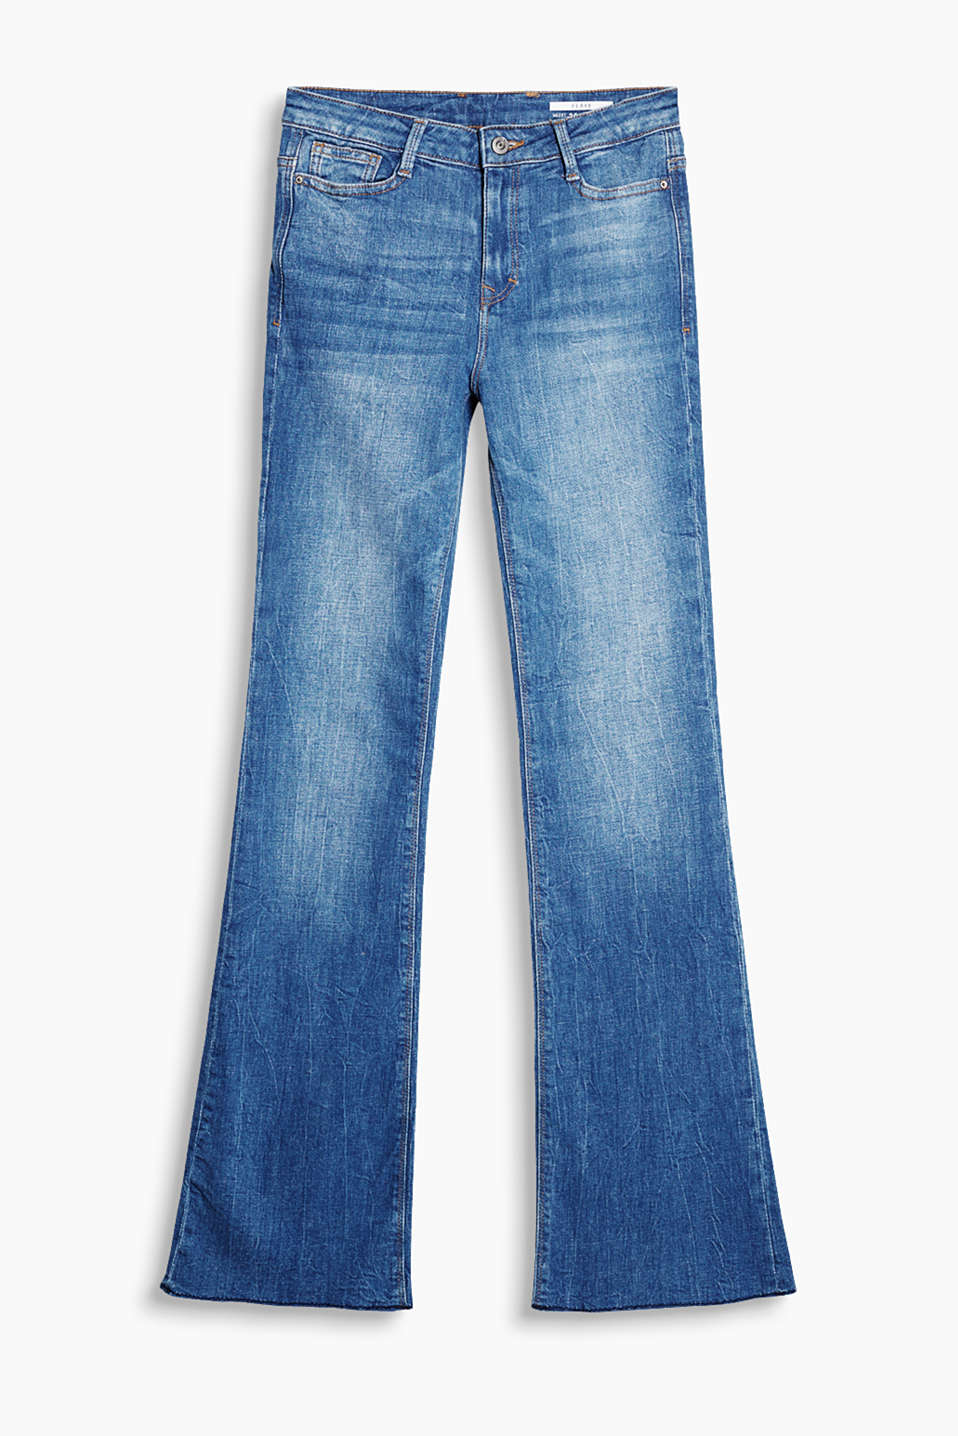 These jeans have authentic, garment-washed effects and are in a stylish flared look